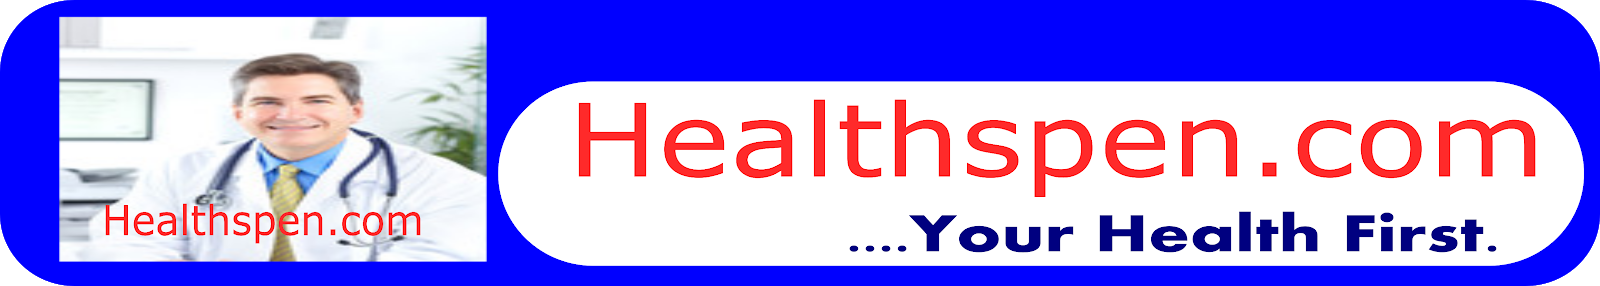 Healthspen | Your Health First...before any other thing.